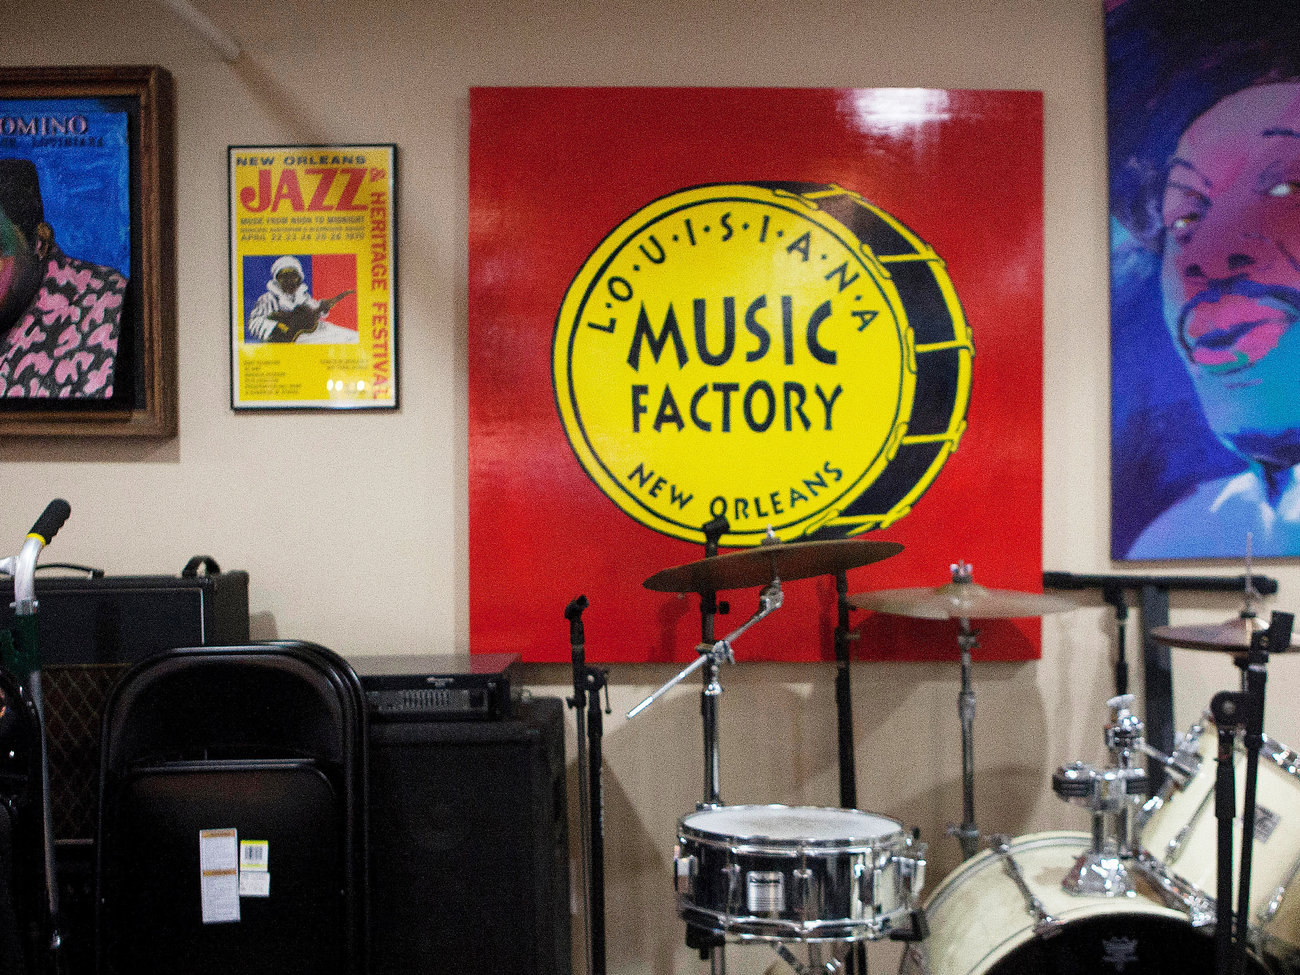 Louisiana Music Factory Store in New Orleans